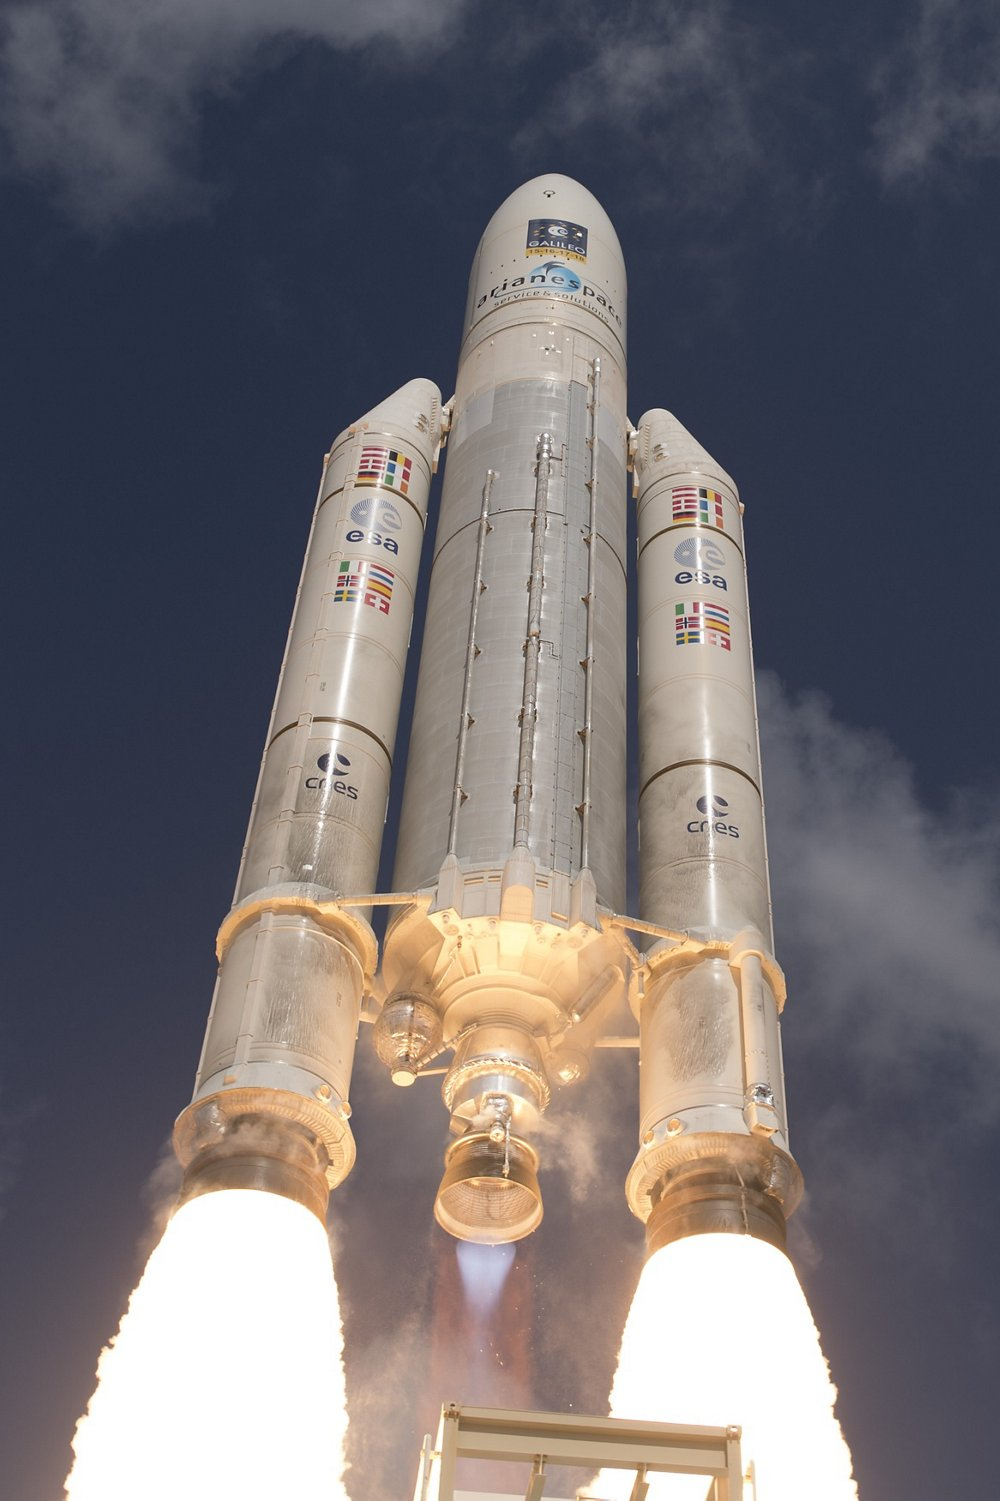 Galileo satellites' launch for the In-Orbit Validation phase aboard an Ariane 5 from Kourou, French Guiana